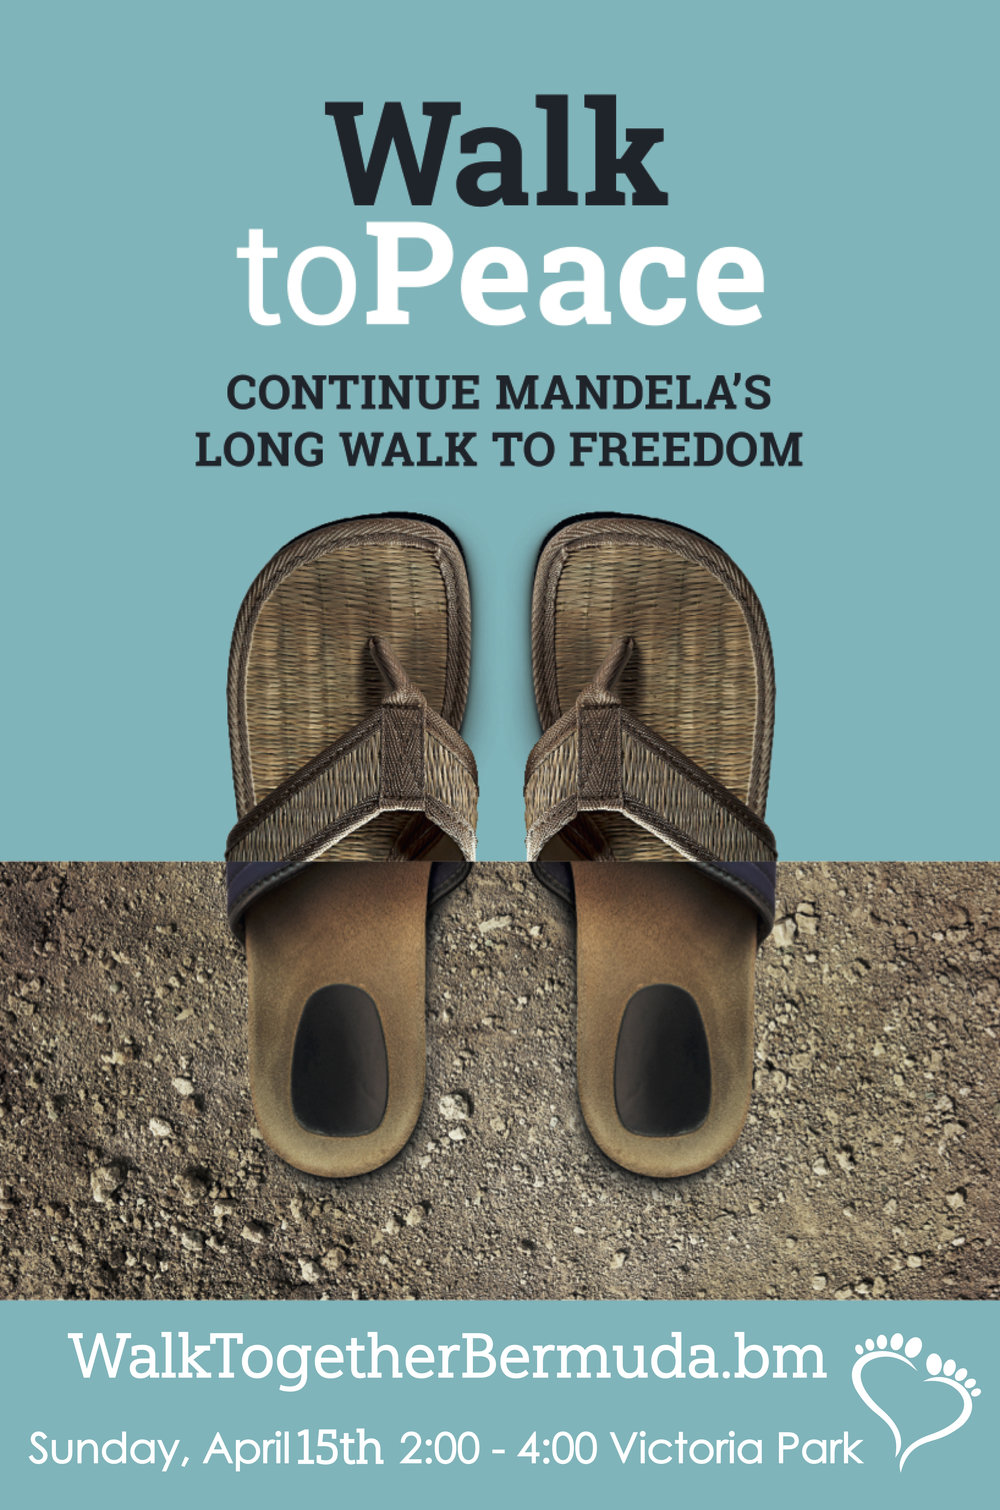 Walk_Together_Bermuda_Posters_Peace_A15.jpg